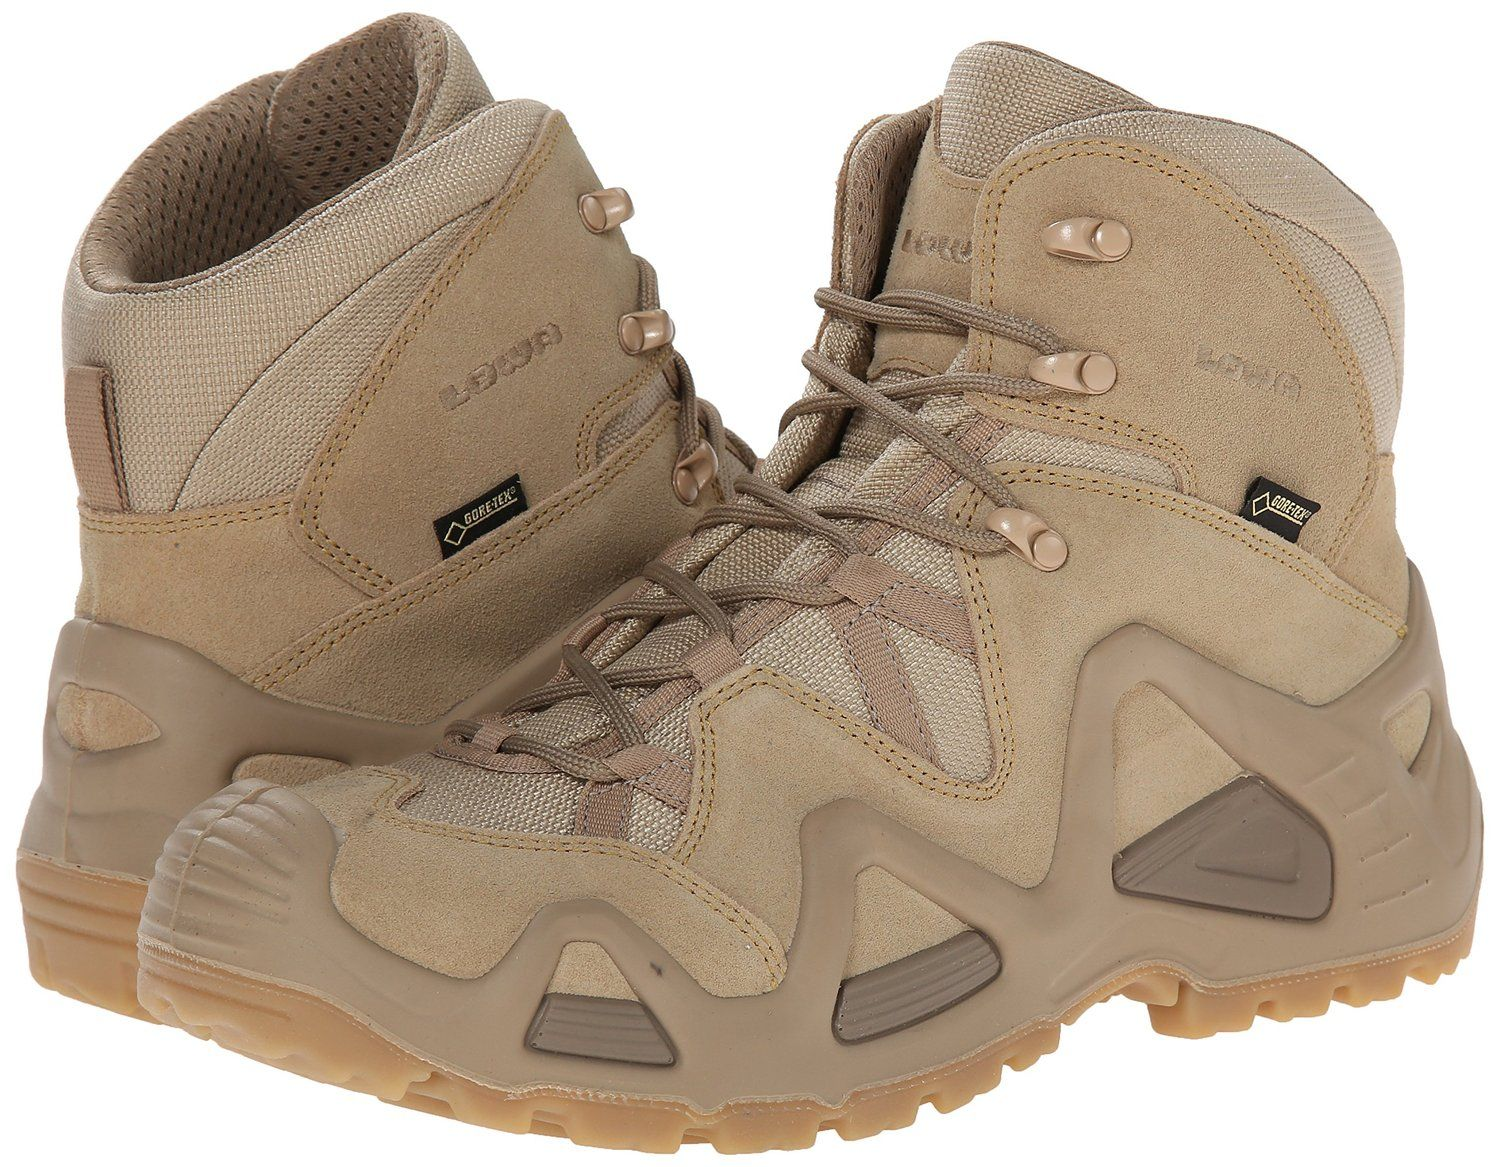 493b6eda2edae Lowa Men's Zephyr GTX Mid TF Hiking Boot | Amazon.com | Dream Gears ...